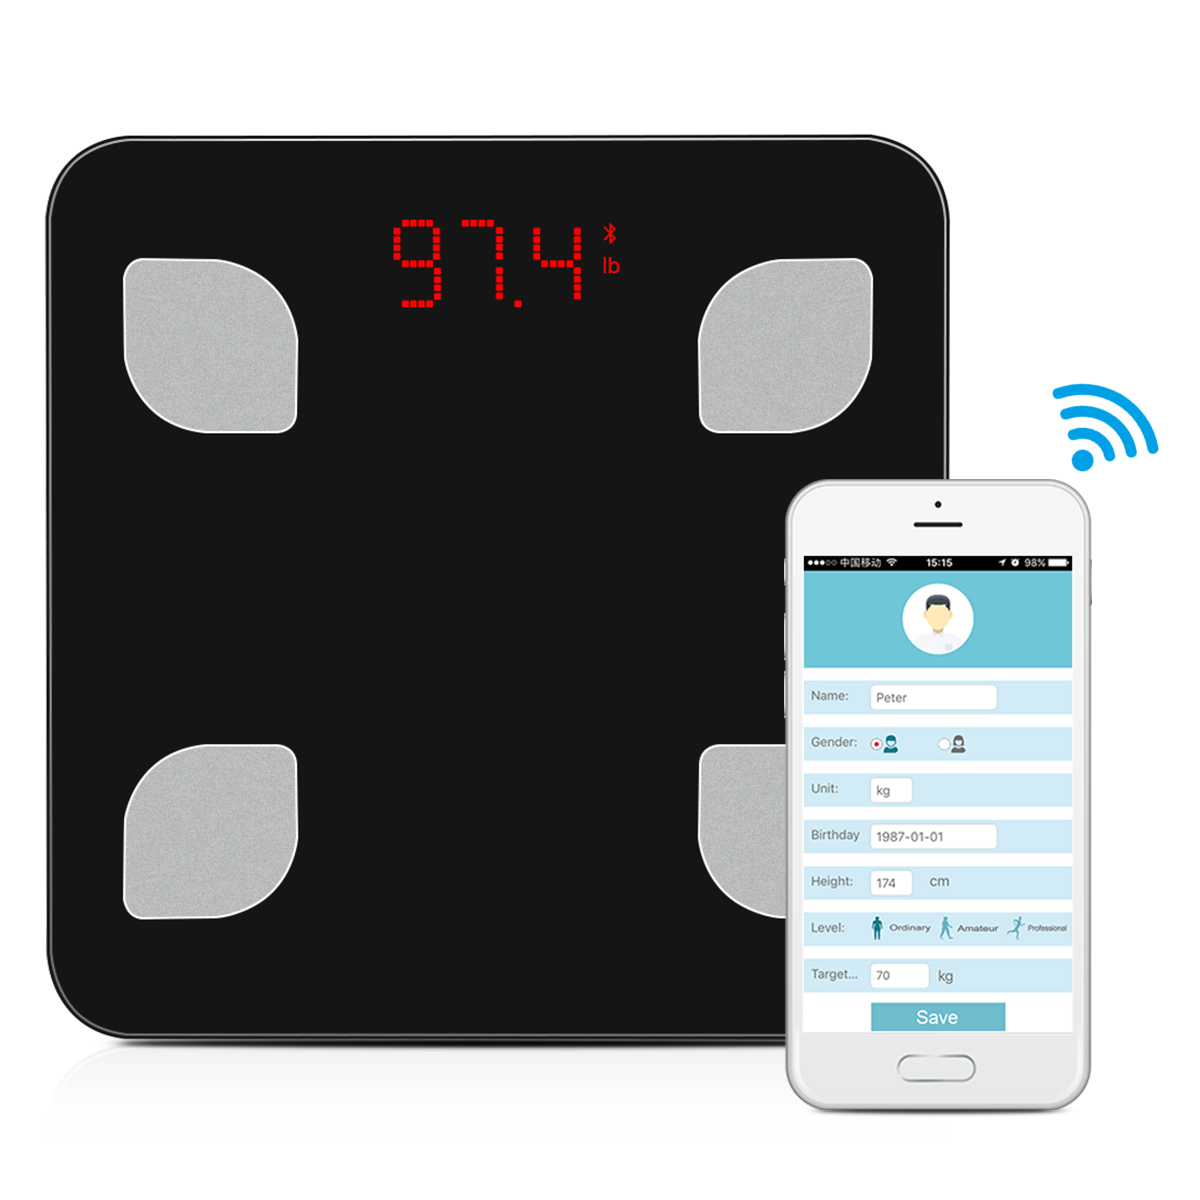 Bluetooth Body Fat Scale - Smart BMI Scale Digital Bathroom Wireless Weight Scale, Body Composition Analyzer with Smartphone App for Body Weight, Fat, Water, BMI, BMR, Muscle Mass, Visceral Fat(Black)